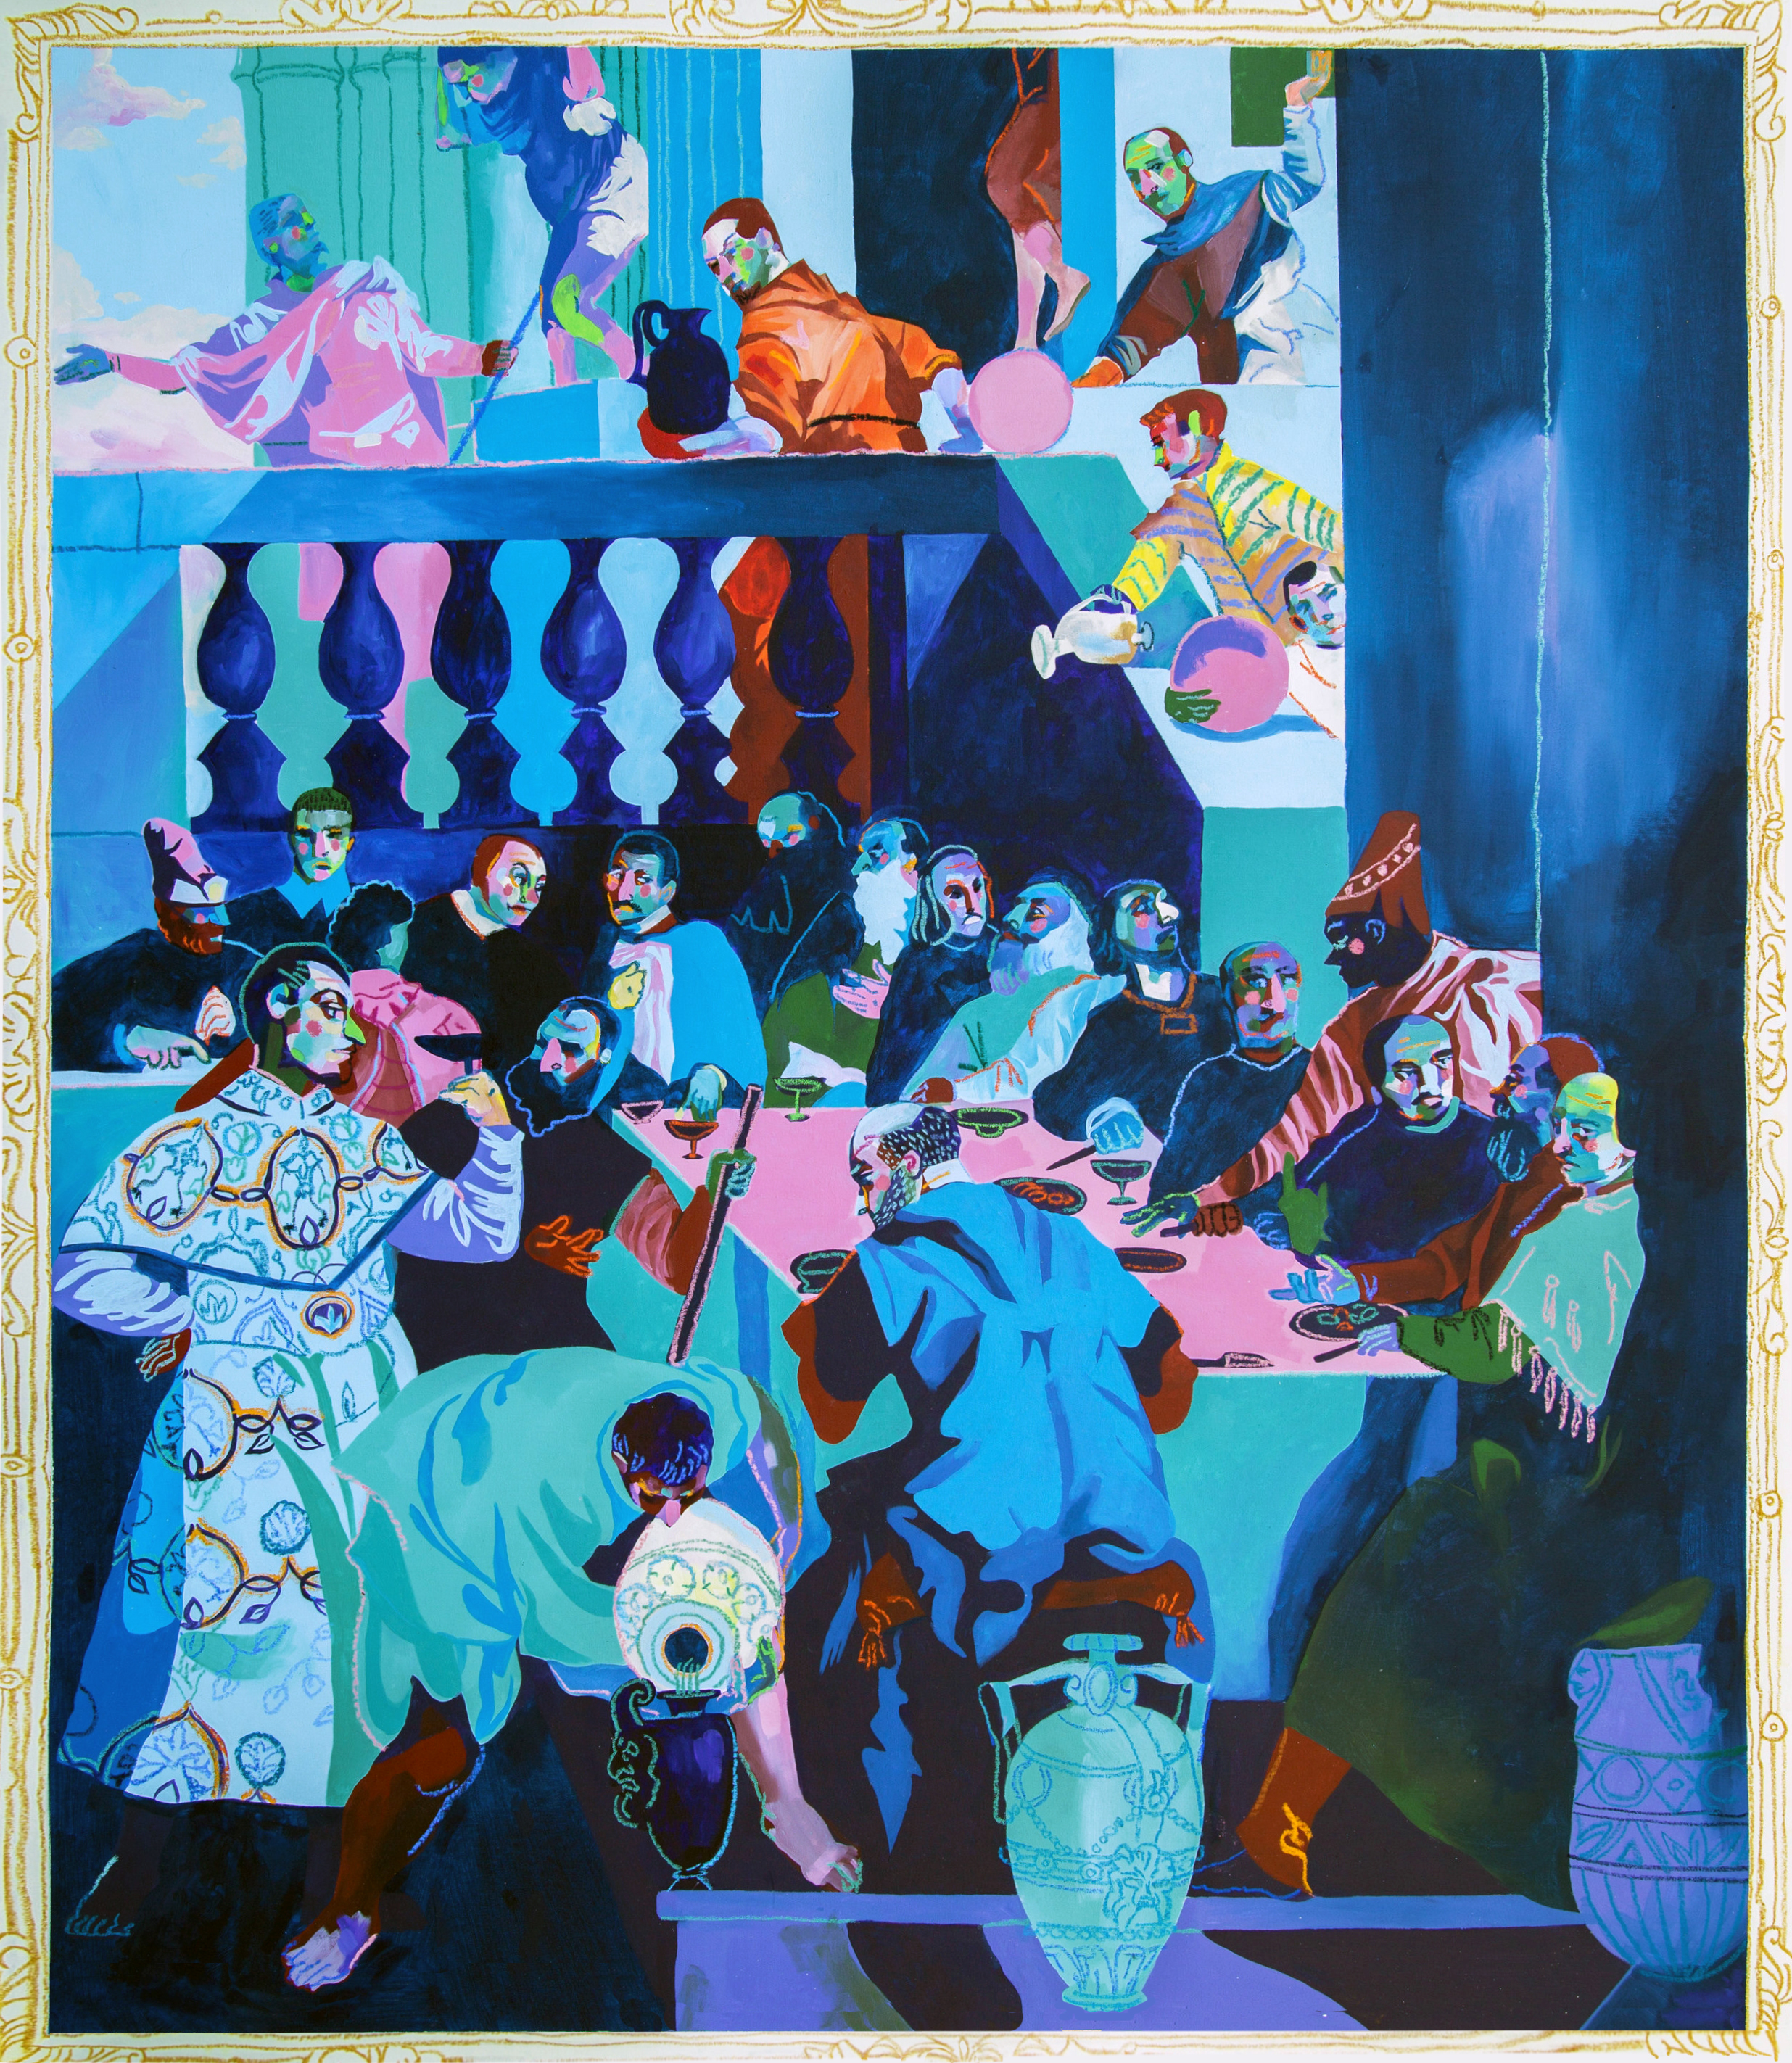 Expensive Painting (Wedding at Cana), 2016